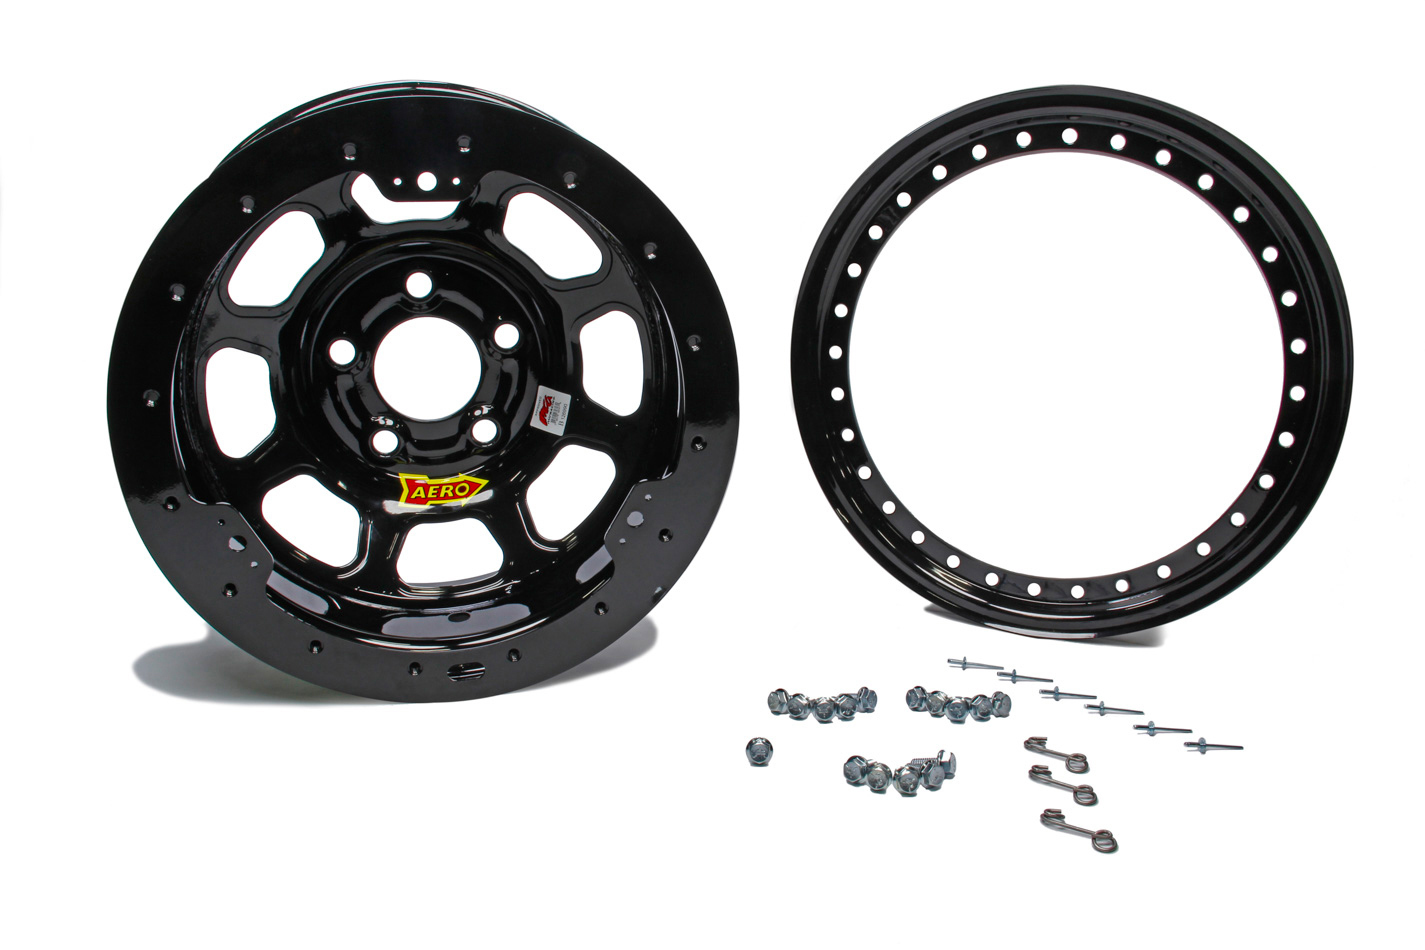 Aero Race 13x7 2in. 4.50 Black Beadlock  Wheel